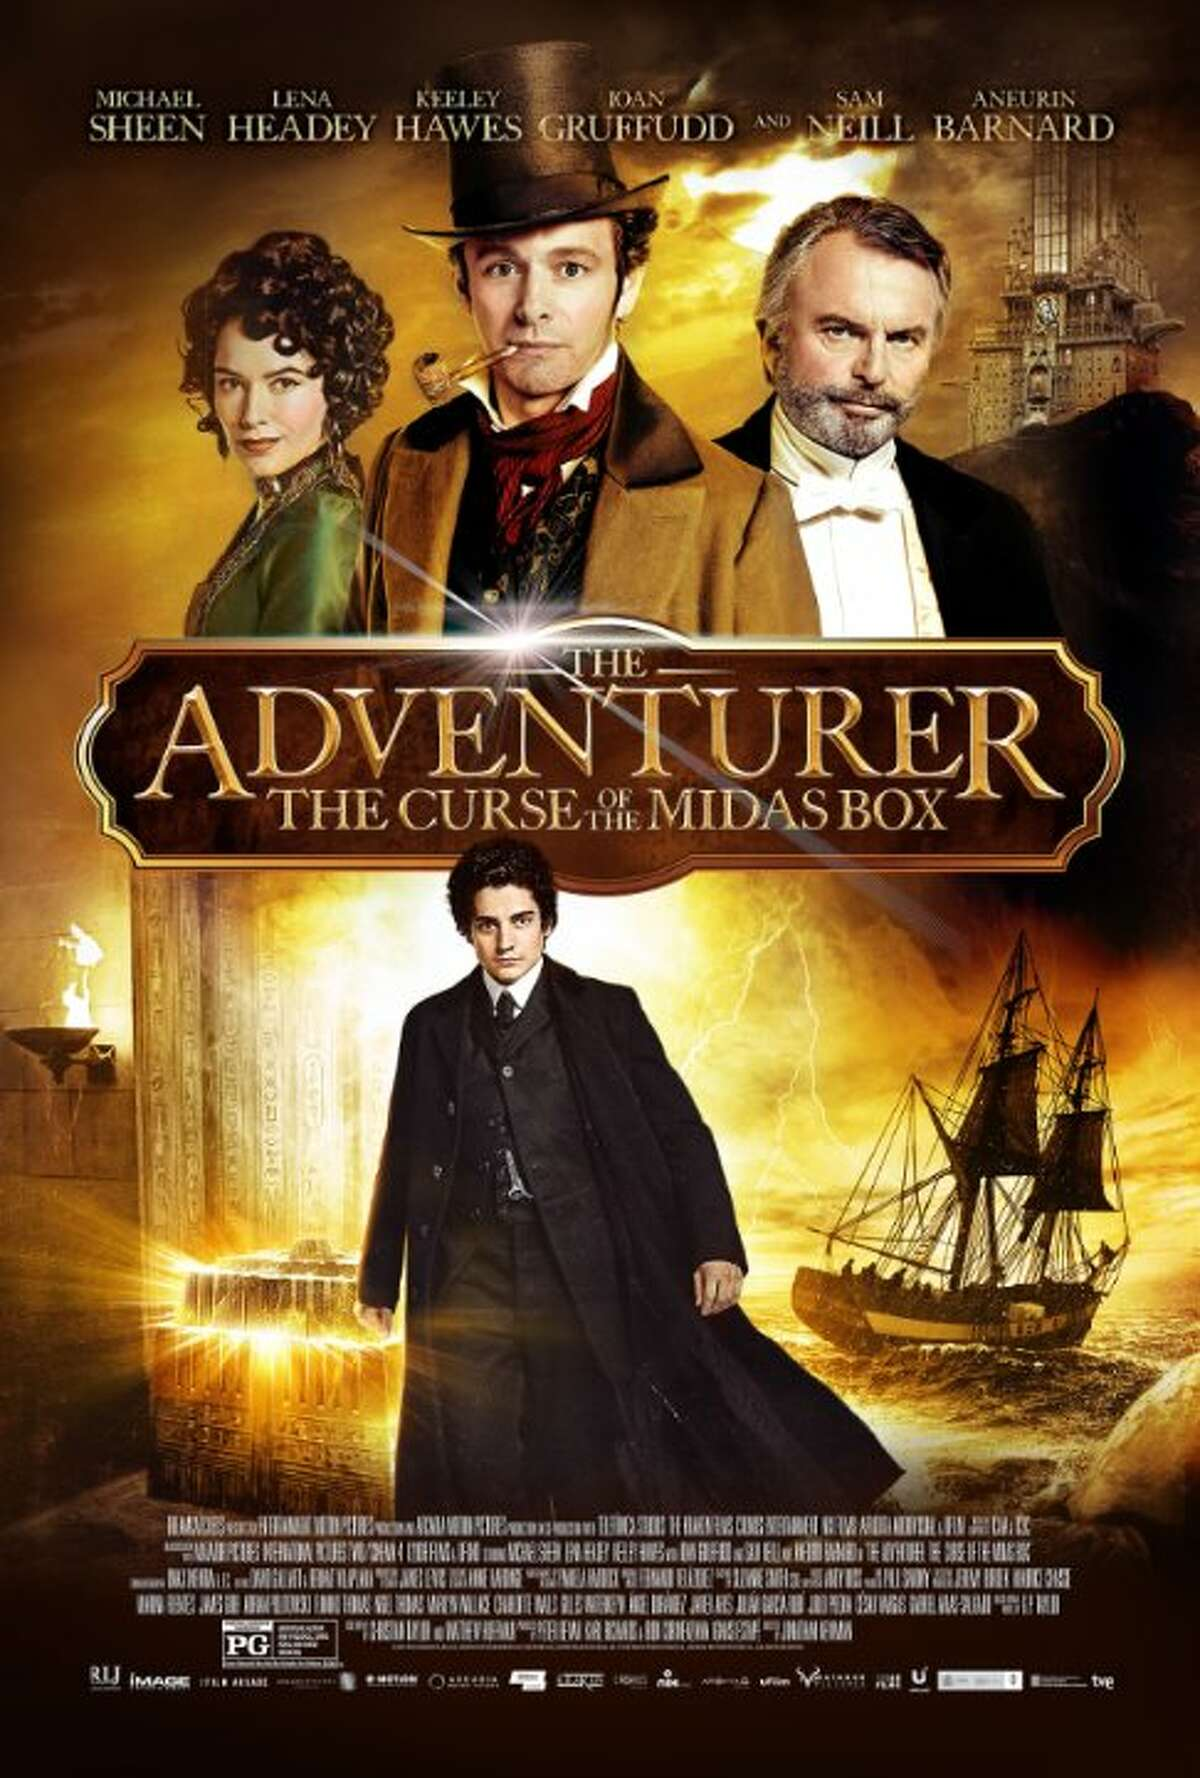 Adventurer: The Curse of the Midas Box Starring: Michael Sheen, Lena Headey, Sam Neill Release date: Jan. 10 When Mariah's brother is kidnapped, he discovers that the key to getting him back hinges on finding an extraordinary box that turns everything placed inside it to gold.